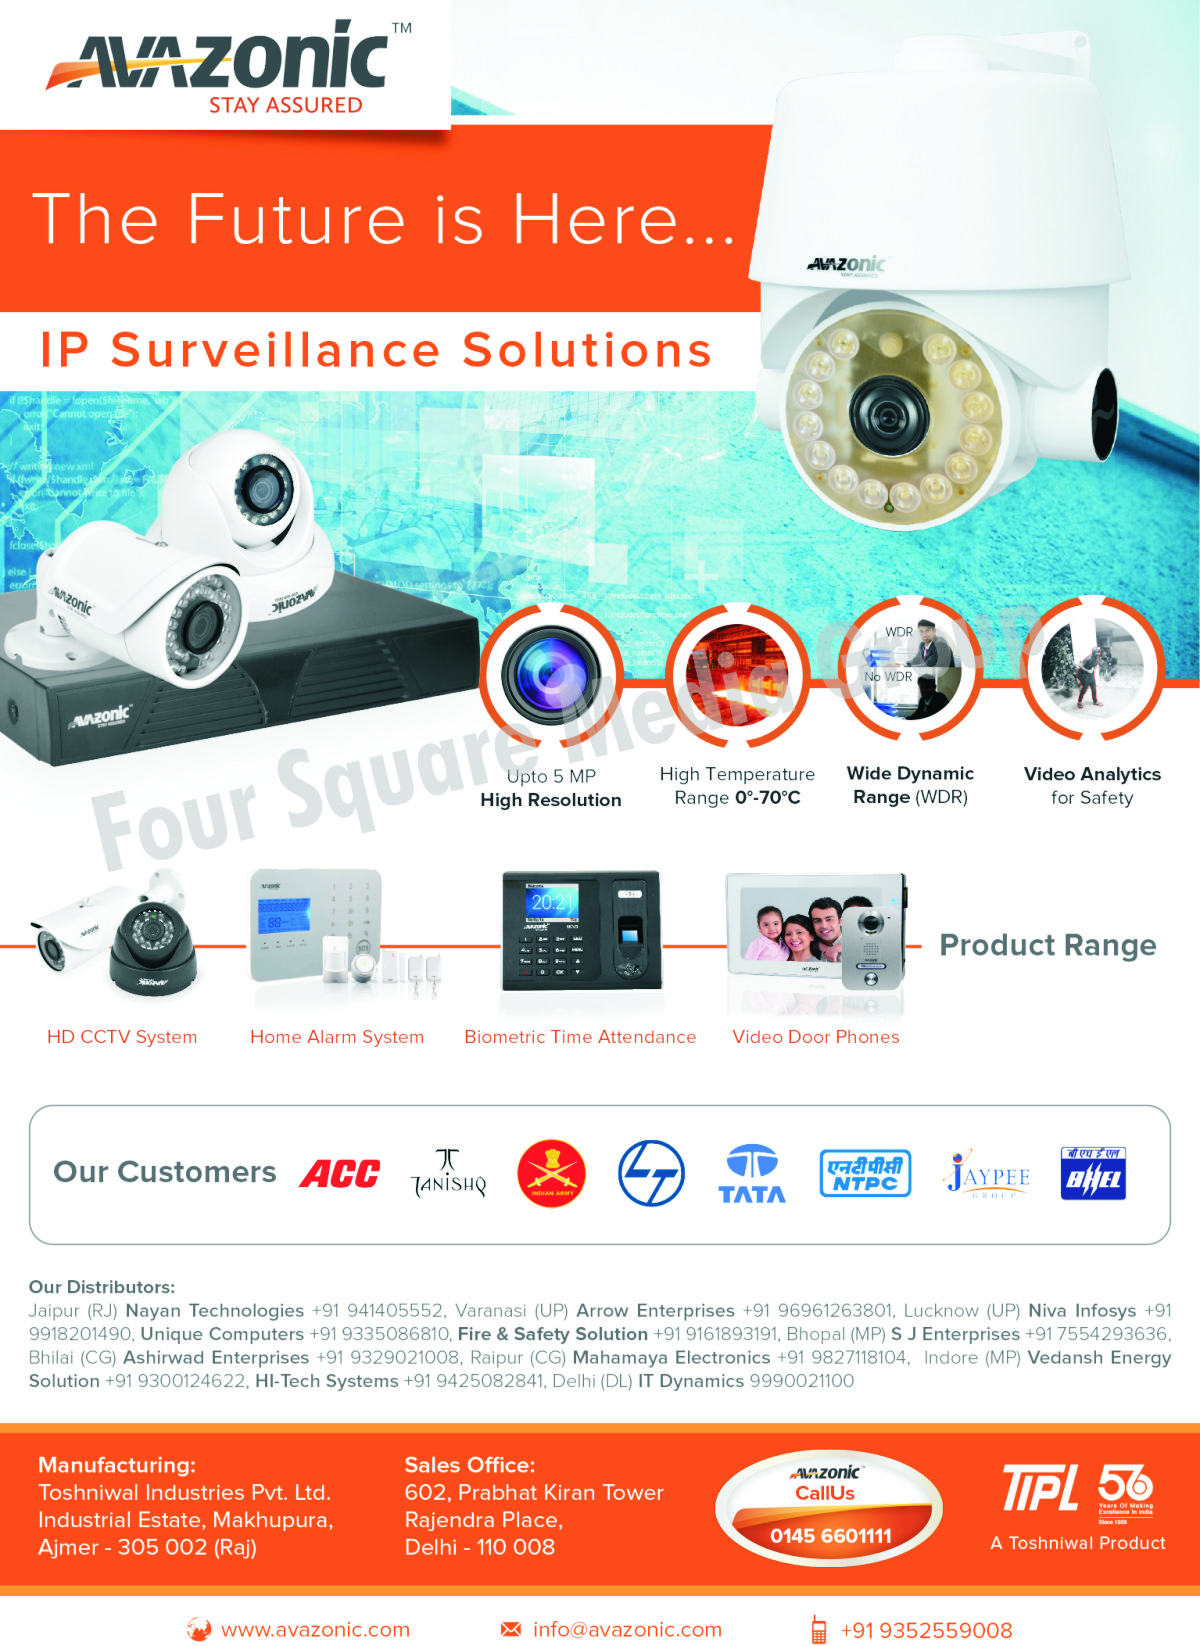 CCTV Systems, CCTV Cameras, Home Alarm Systems, Biometric Time Attendance, Video Door Phones